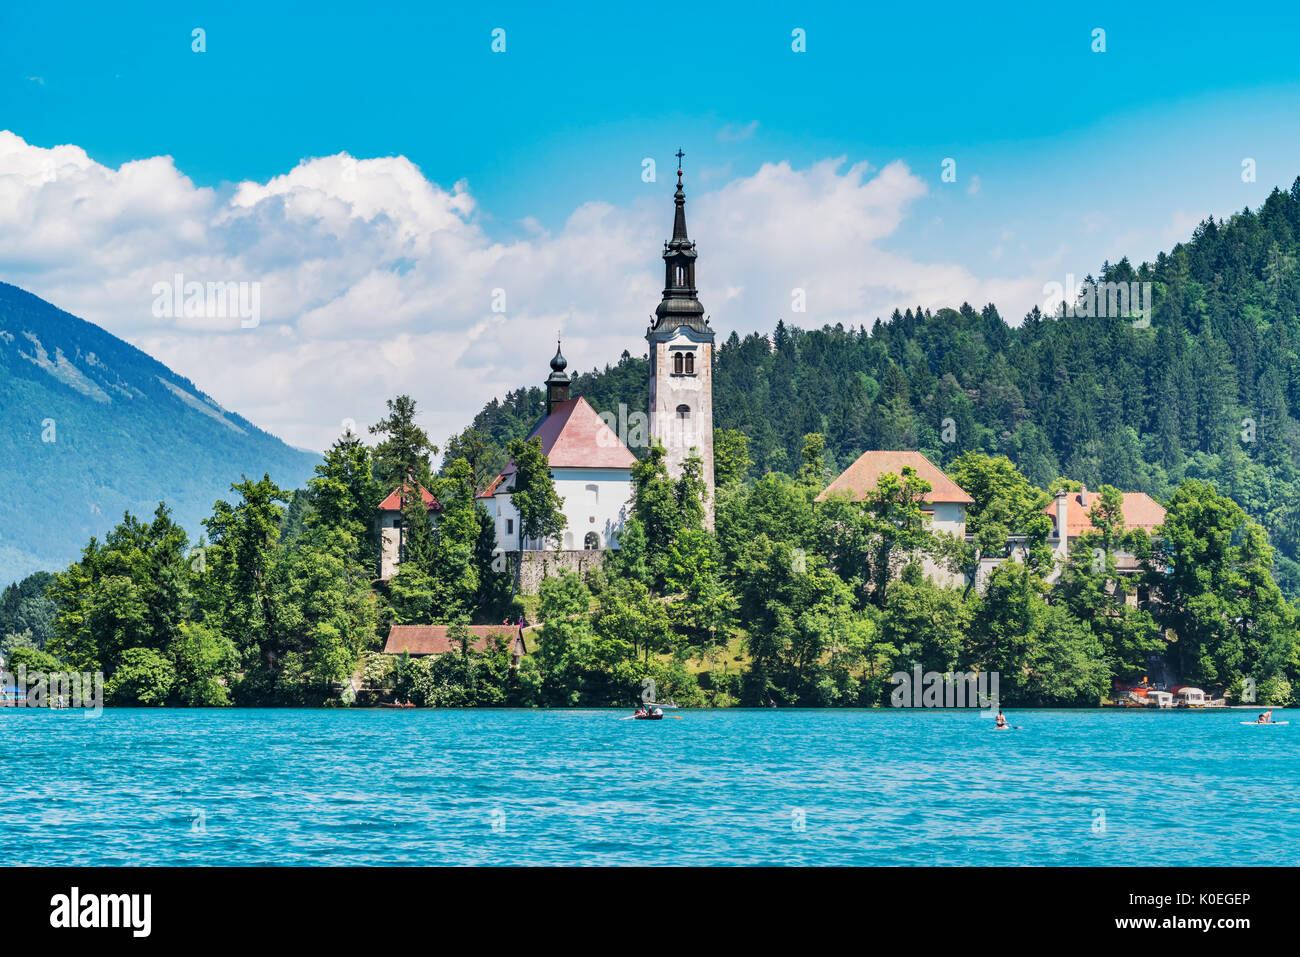 St. Mary's Church is located on a small island in Lake Bled. The Church was built in 1465, Bled, Gorenjska (upper Carniola), Slovenia, Europe. - Stock Image